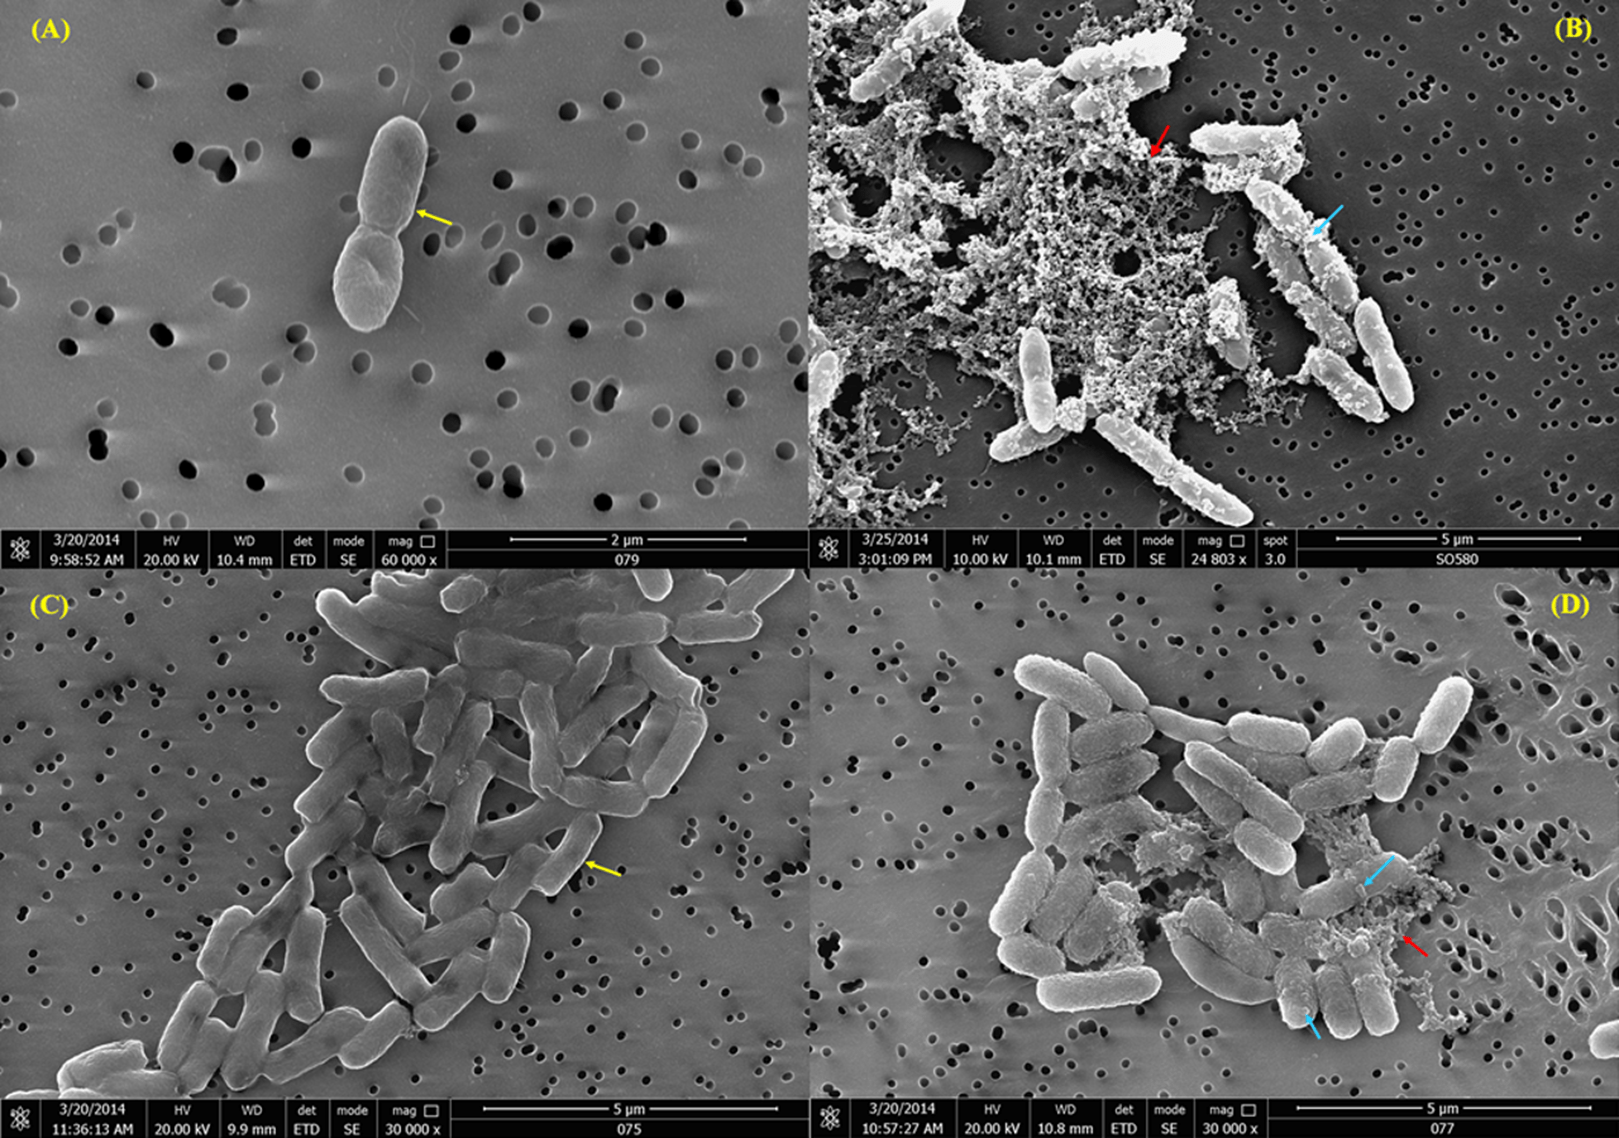 Antimicrobial Activity Of Tachyplesin 1 Against Burkholderia Pseudomallei An In Vitro And In